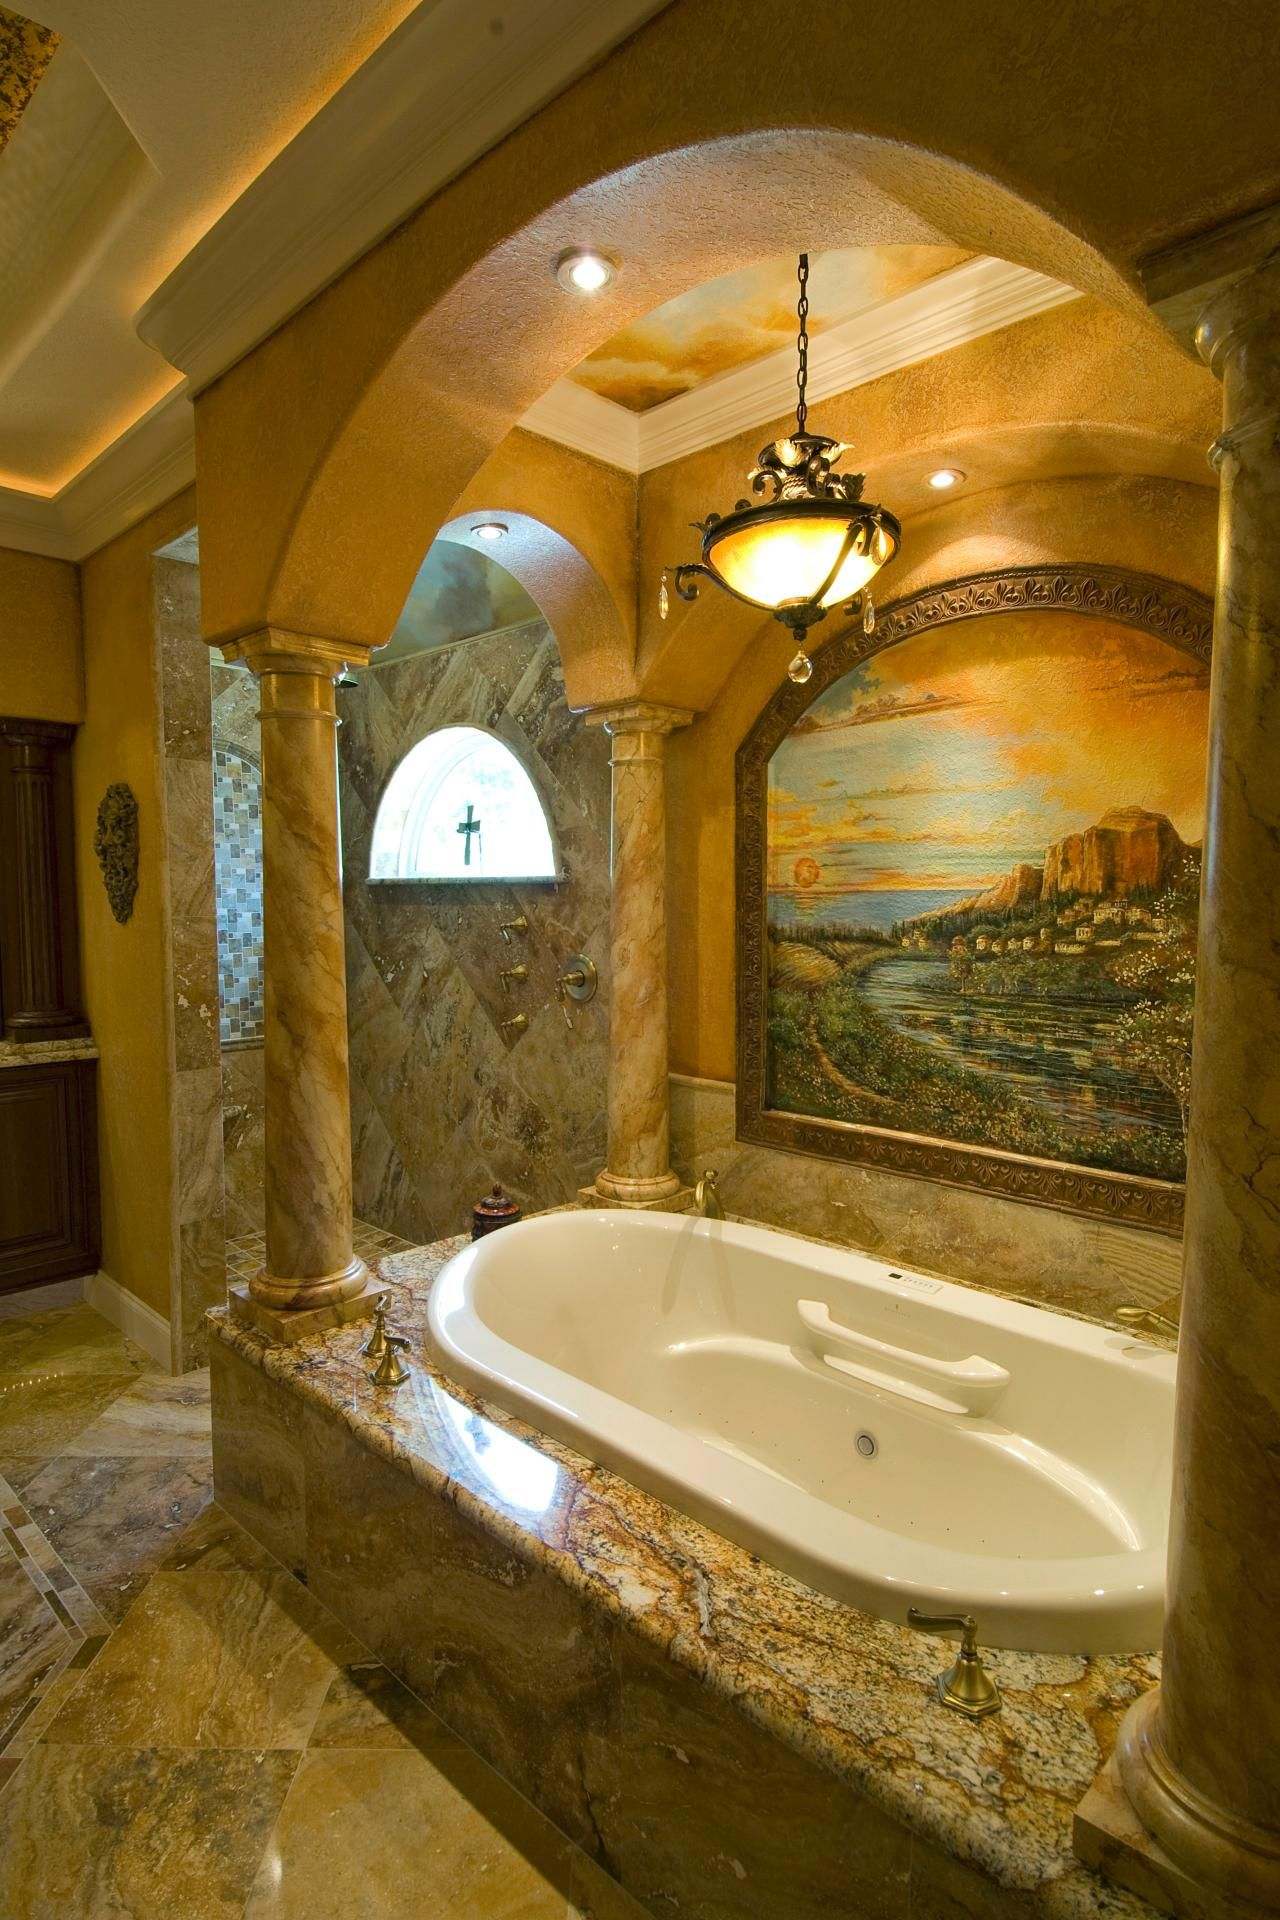 Seeking Bathroom Remodel Companies In Scottsdale? Impact Remodeling Is The Scottsdale  Bathroom Remodel Contractor Of